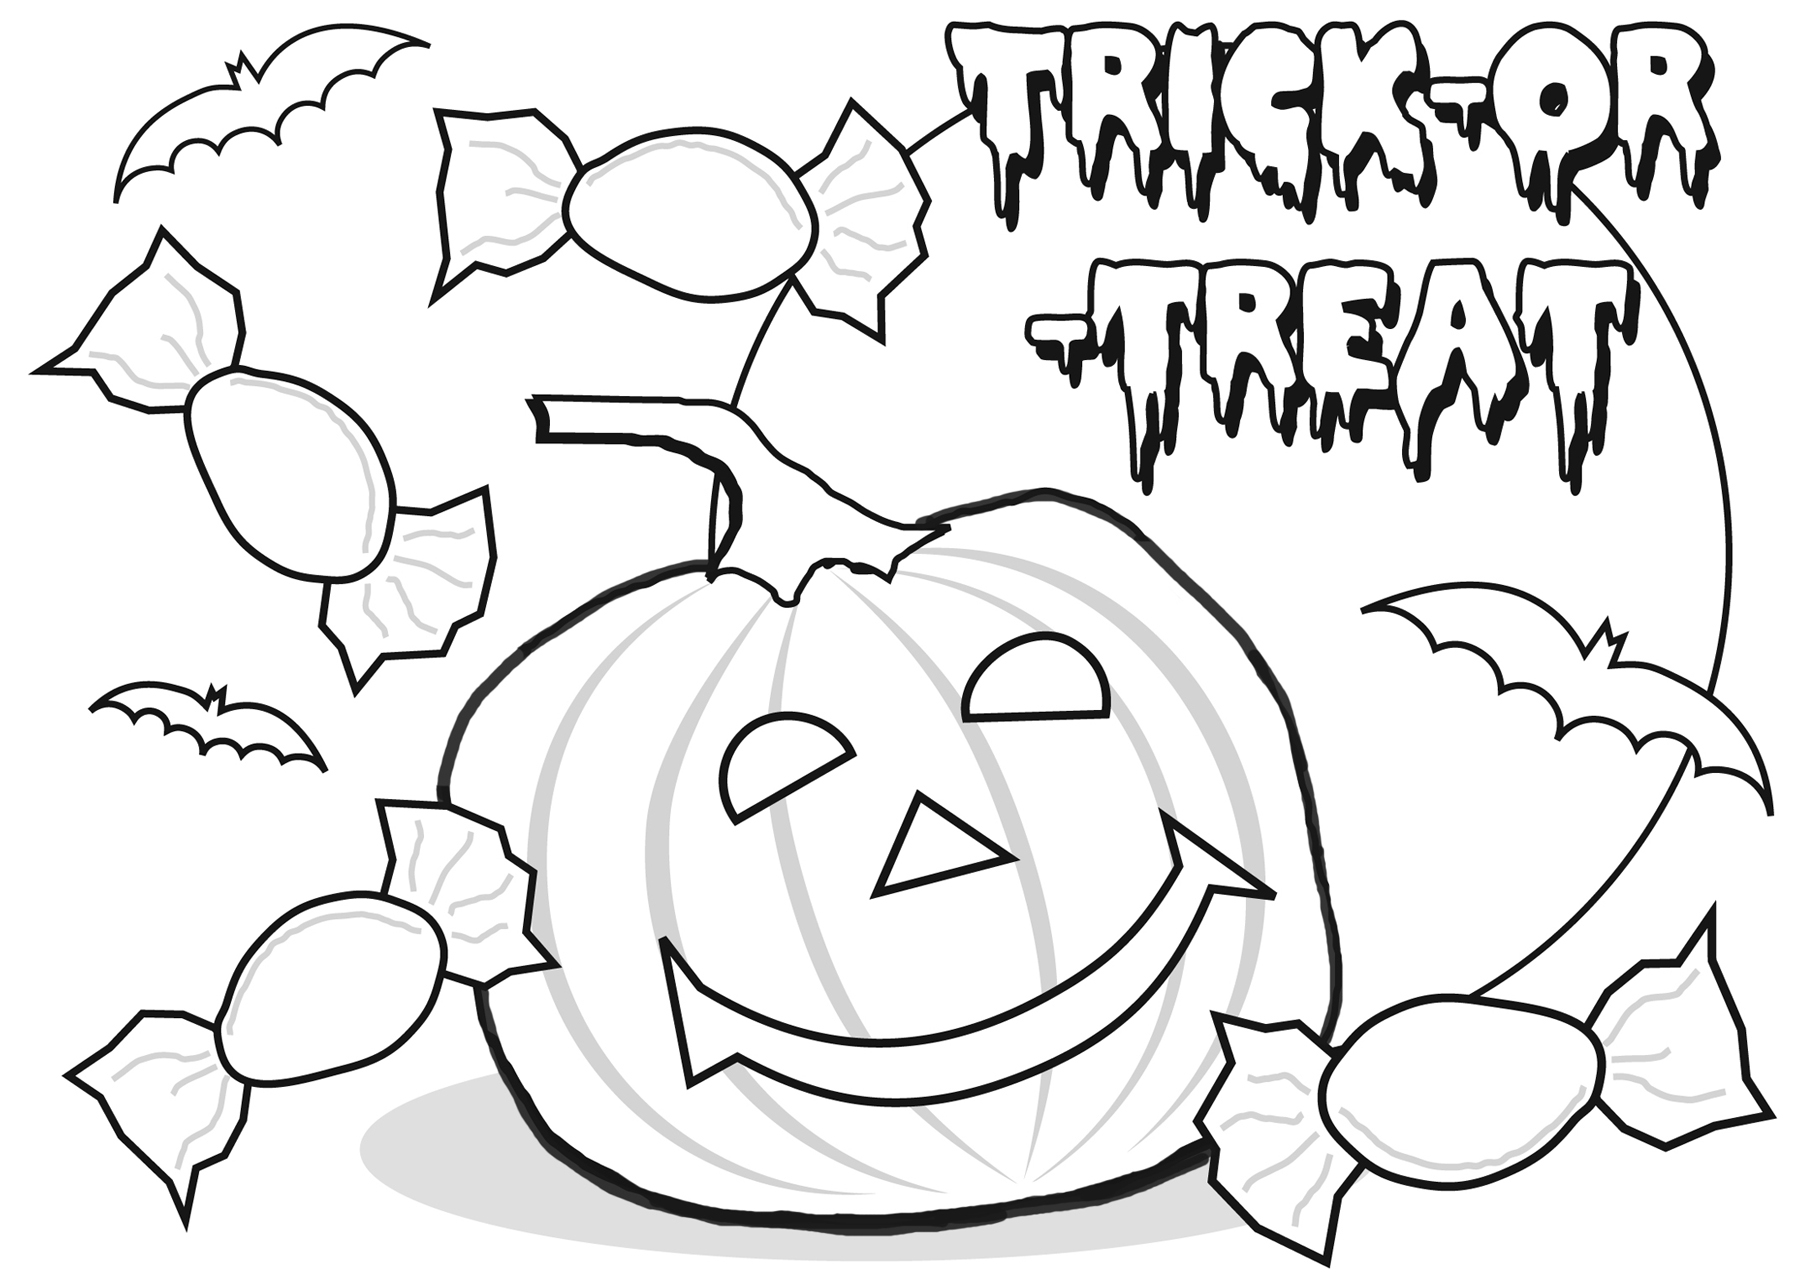 coloring pumpkin halloween clipart coloring ville halloween coloring clipart pumpkin